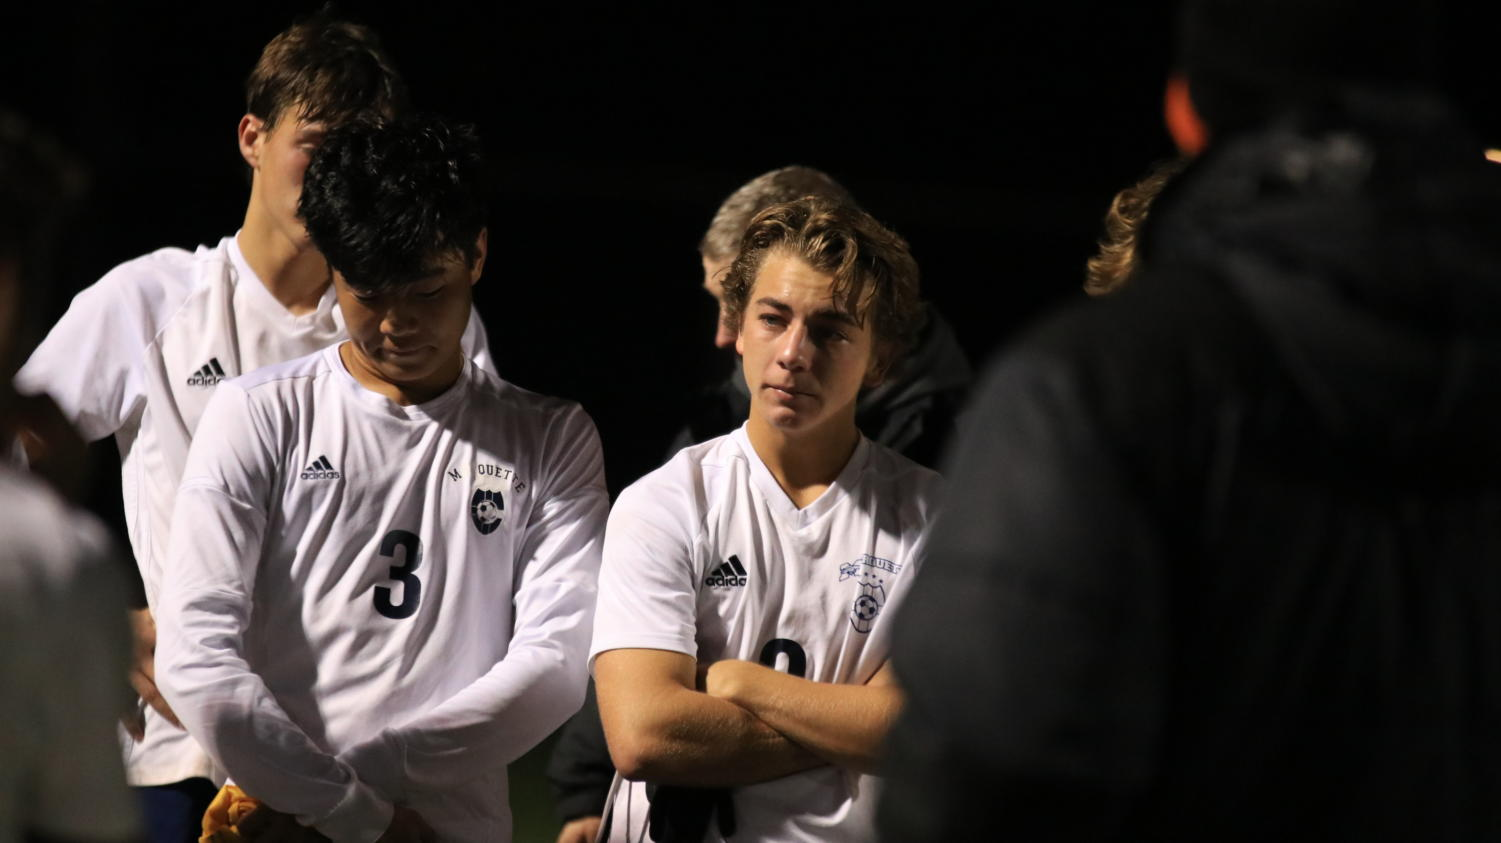 Seniors+Matt+Pak%2C+defender%2C+and+Sam+Weis%2C+defender%2C+reflect+on+the+game+while+their+coaches+shared+closing+thoughts.+Weis+is+one+of+three+team+captains+and+has+played+for+MHS+since+his+freshman+year.+%E2%80%9CWhile+it+was+a+lot+of+fun+leading+the+team+this+year+with+such+great+teammates%2C+it+came+with+a+lot+of+responsibility+to+help+set+a+good+example+to+the+teammates+on+what+is+expected+of+them+while+they+are+on+varsity%2C%E2%80%9D+Weis+said.+%0A